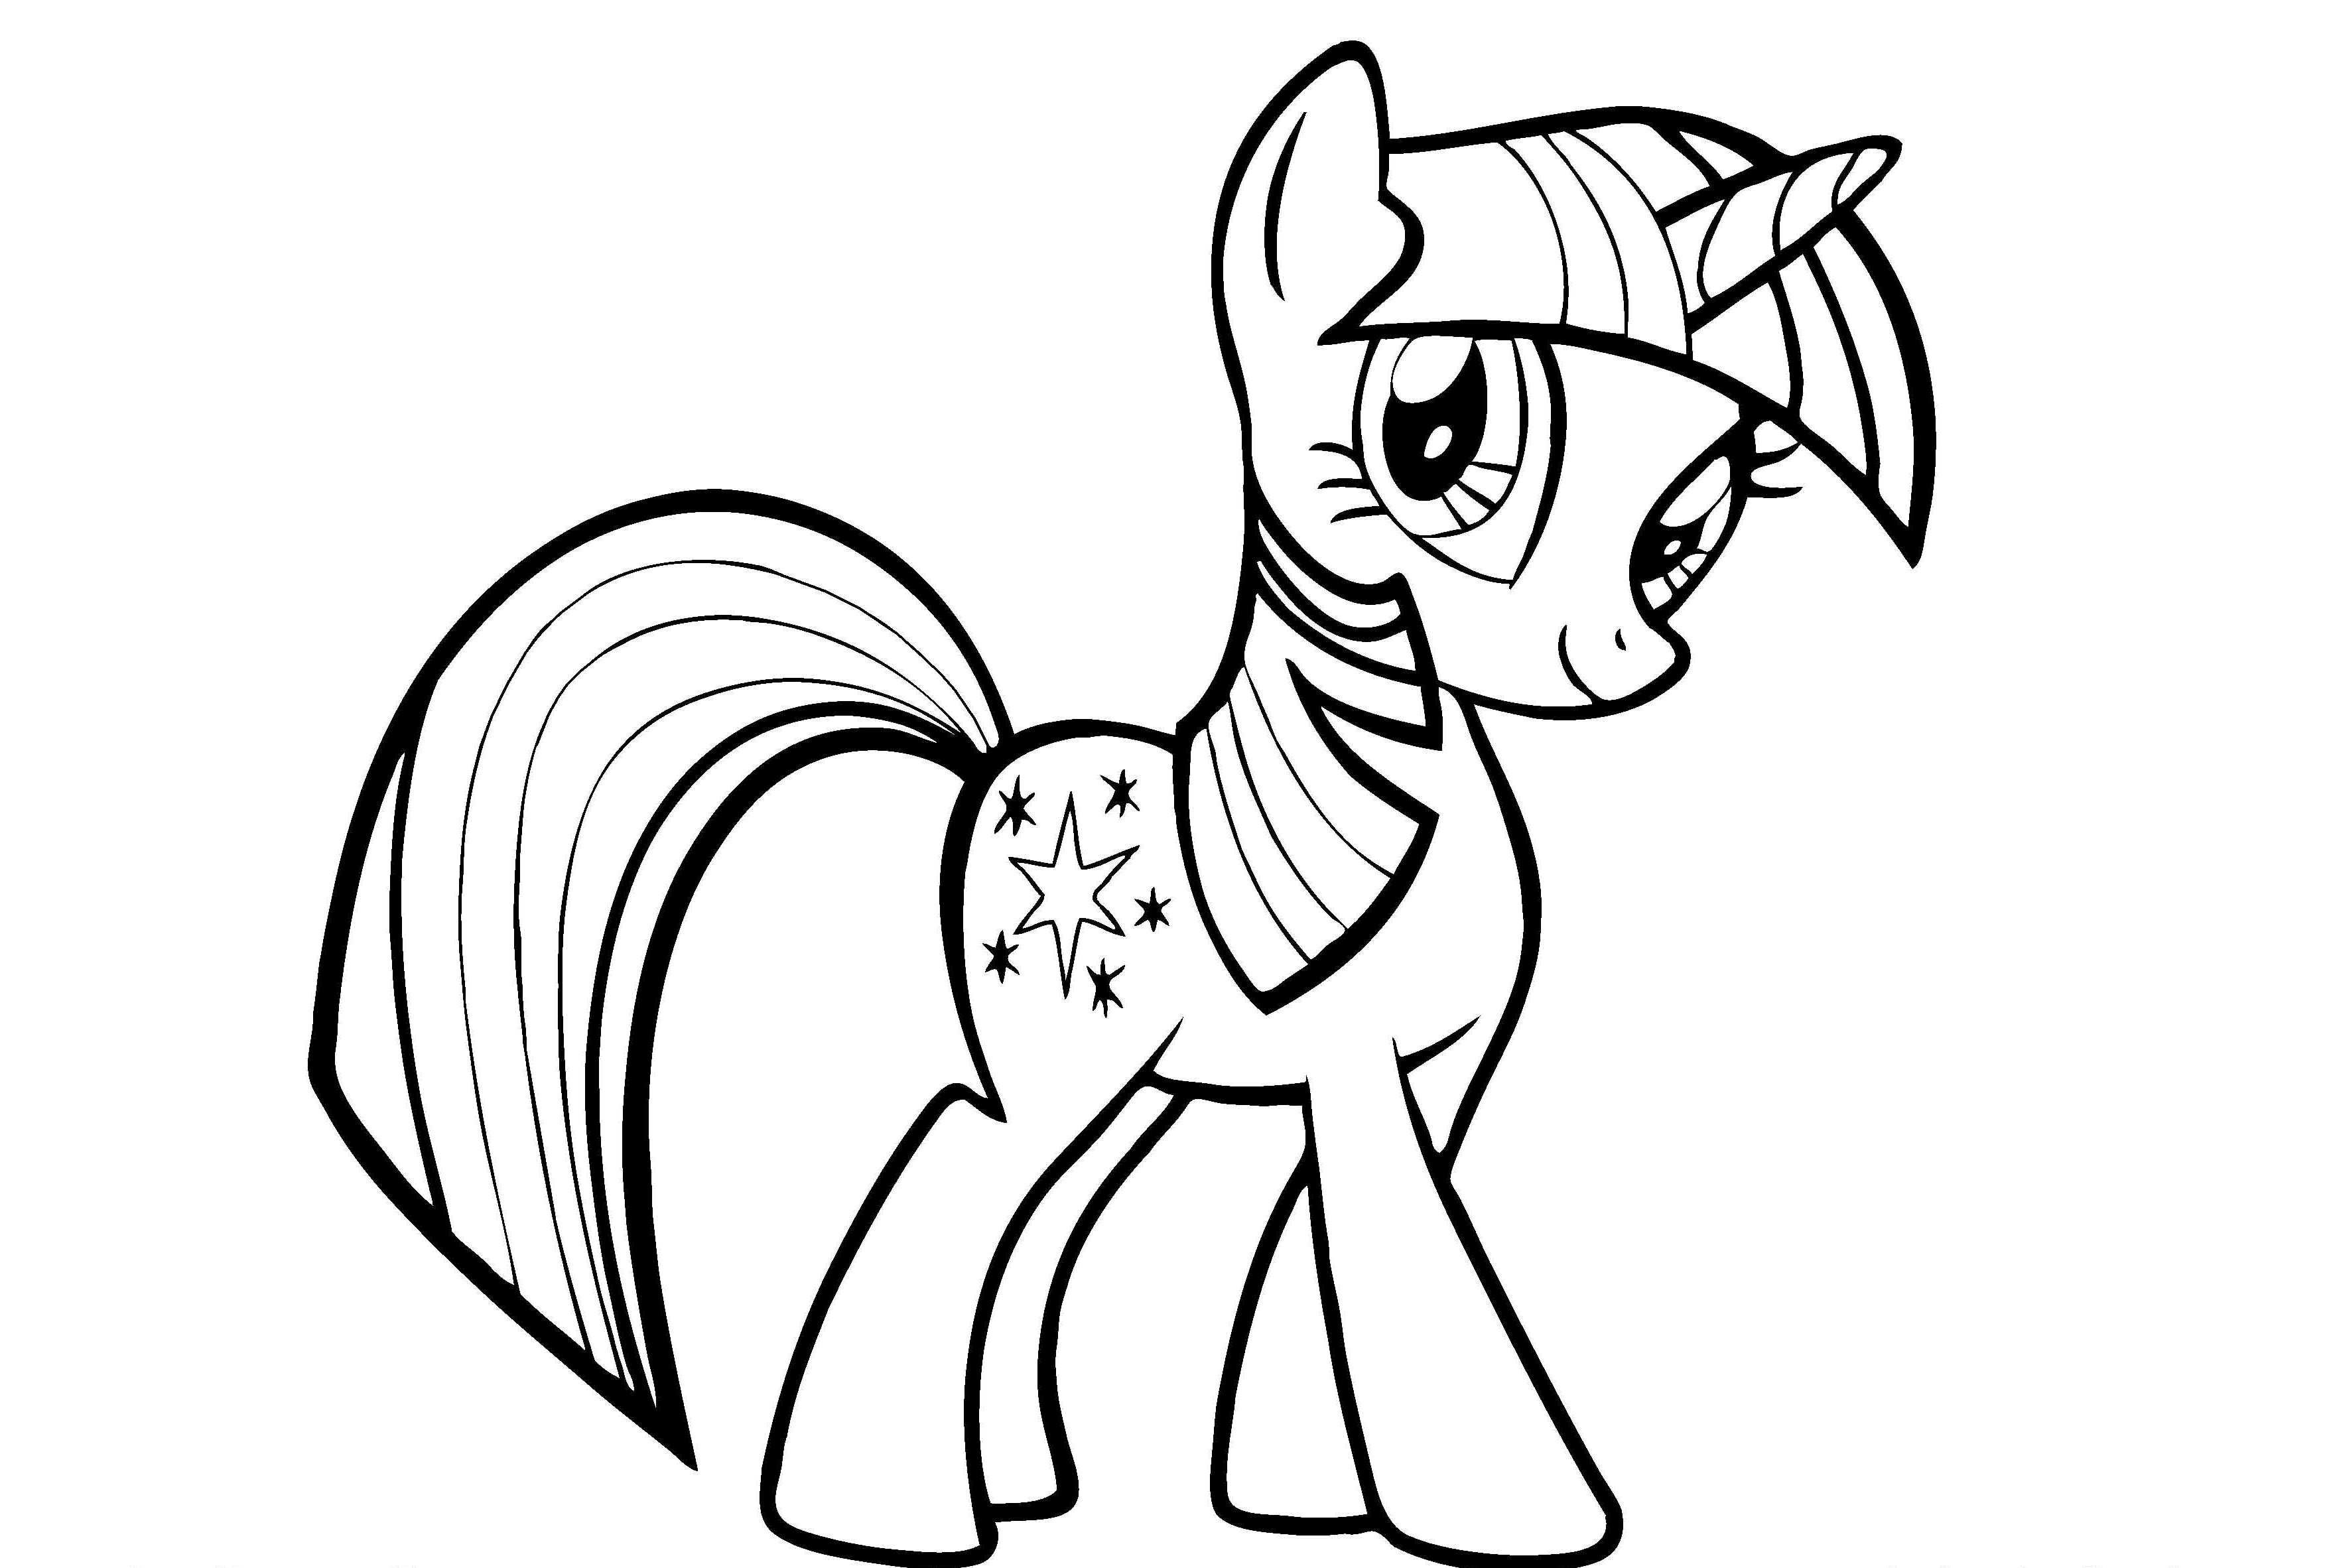 my little pony coloring pages twilight sparkle twilight sparkle coloring pages best coloring pages for kids sparkle pages little pony my coloring twilight